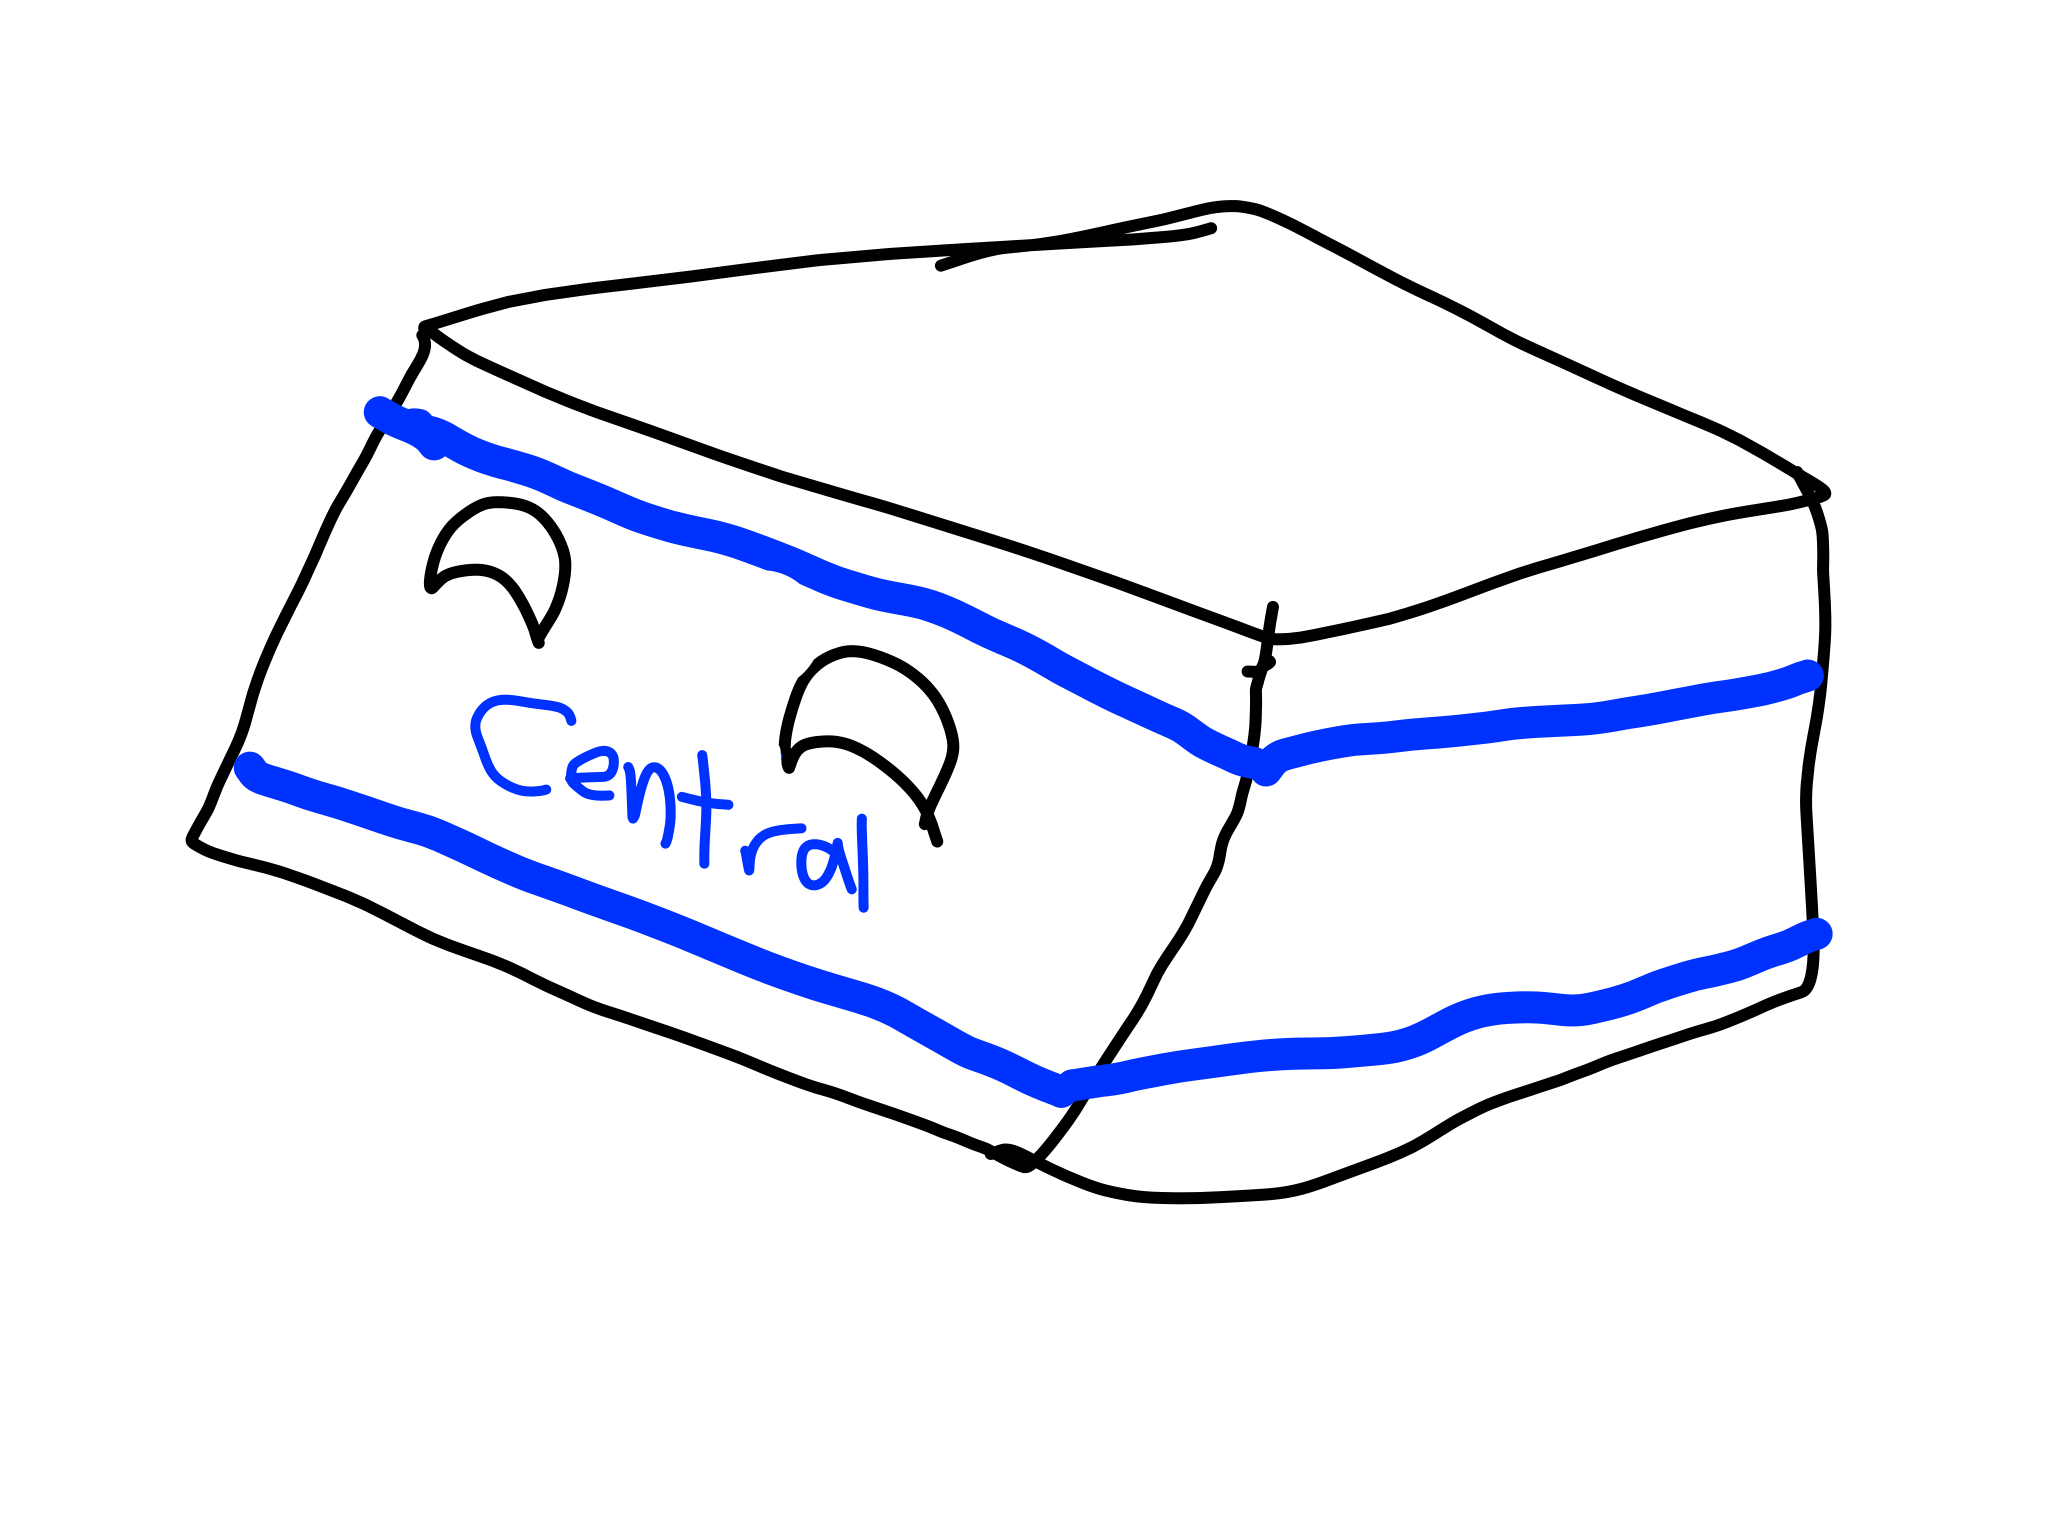 Central Districtcube